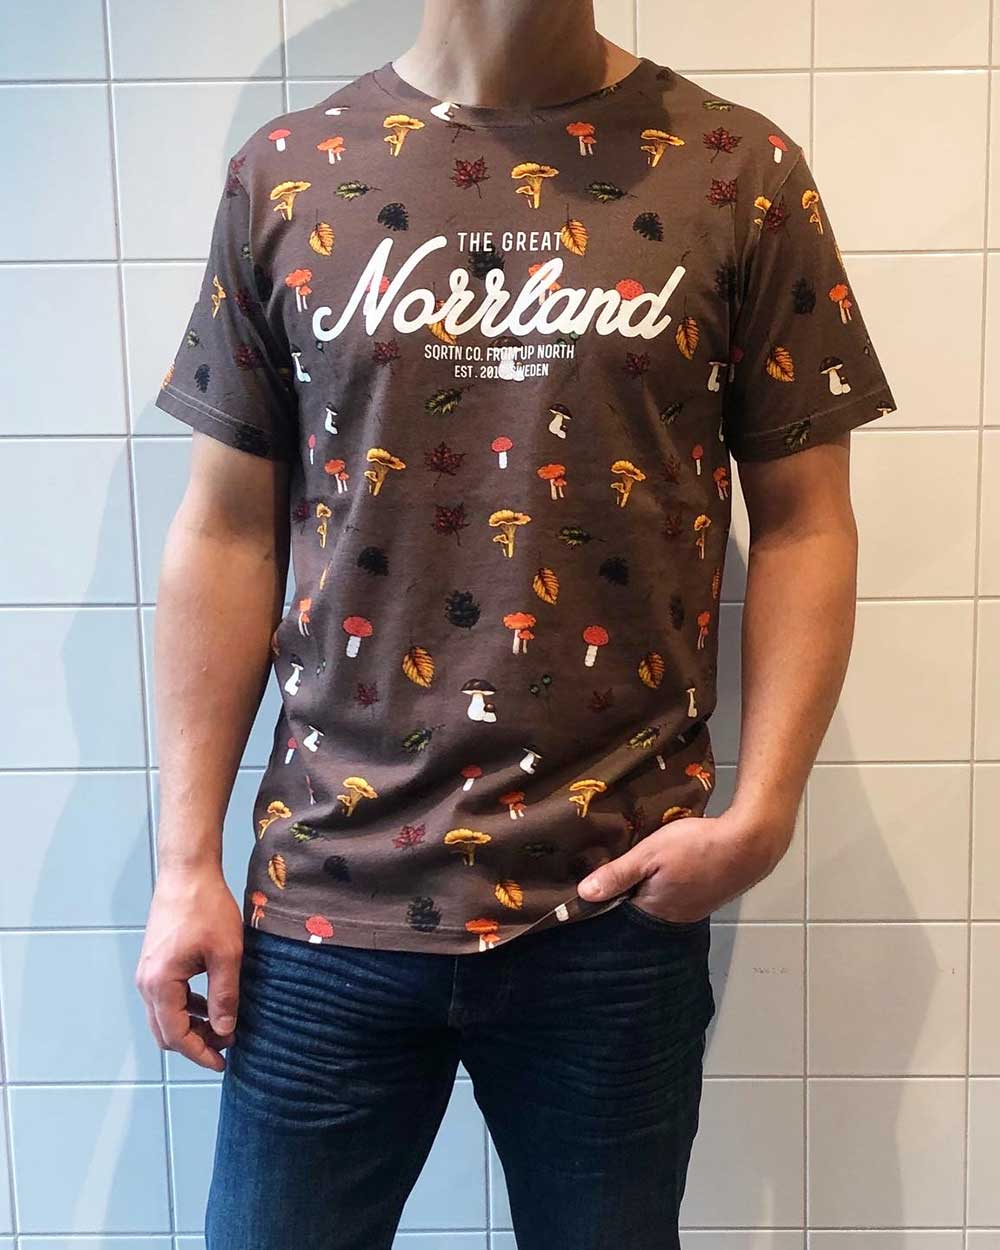 The Great Norrland Shroom Brun T shirt SQRTN Local Store